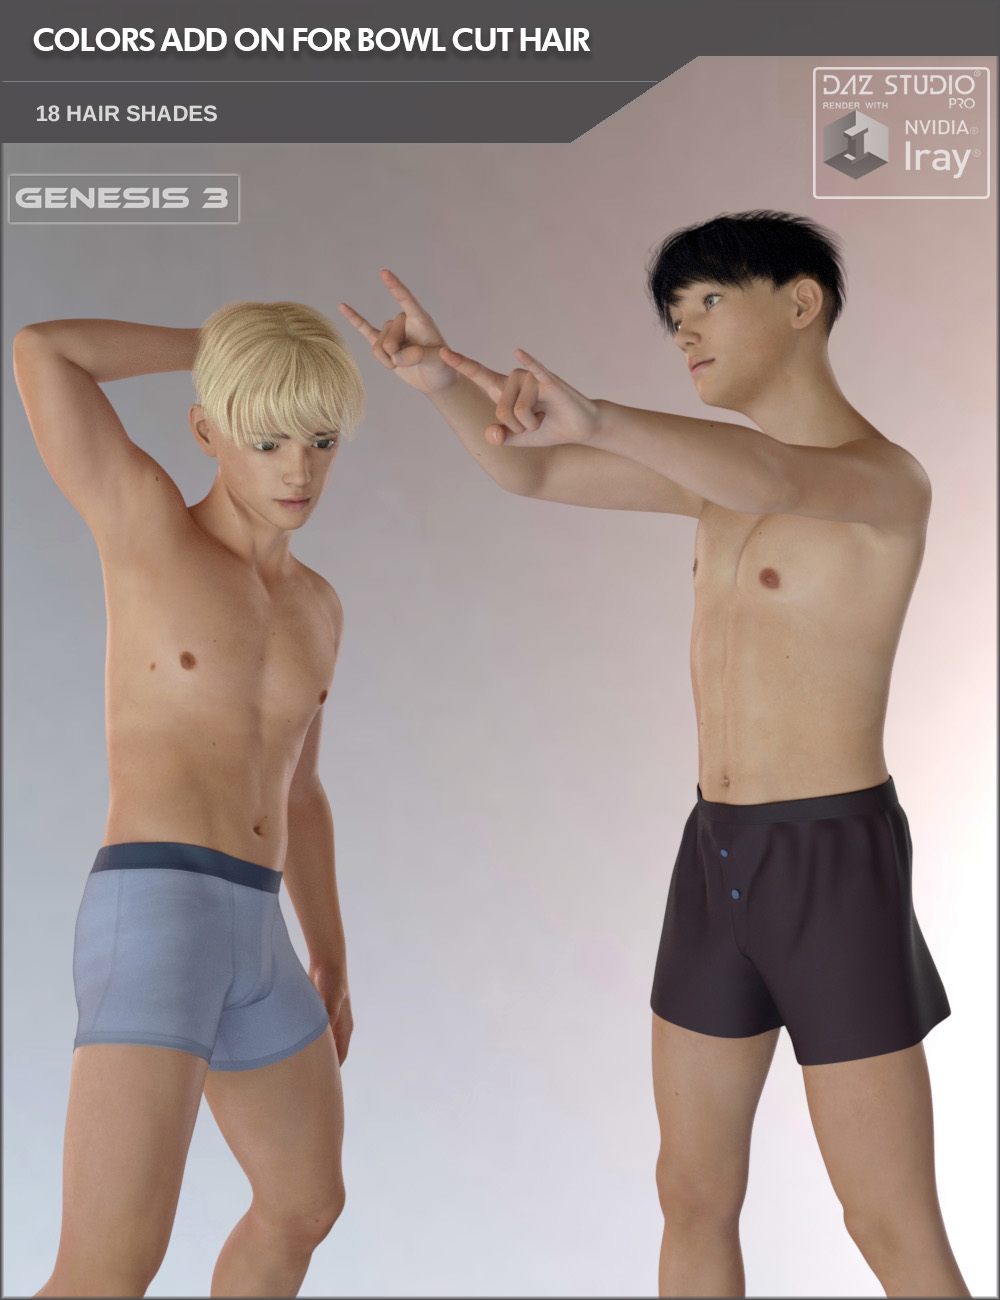 Colors Add On for Bowl Cut Hair for Genesis 3 Males